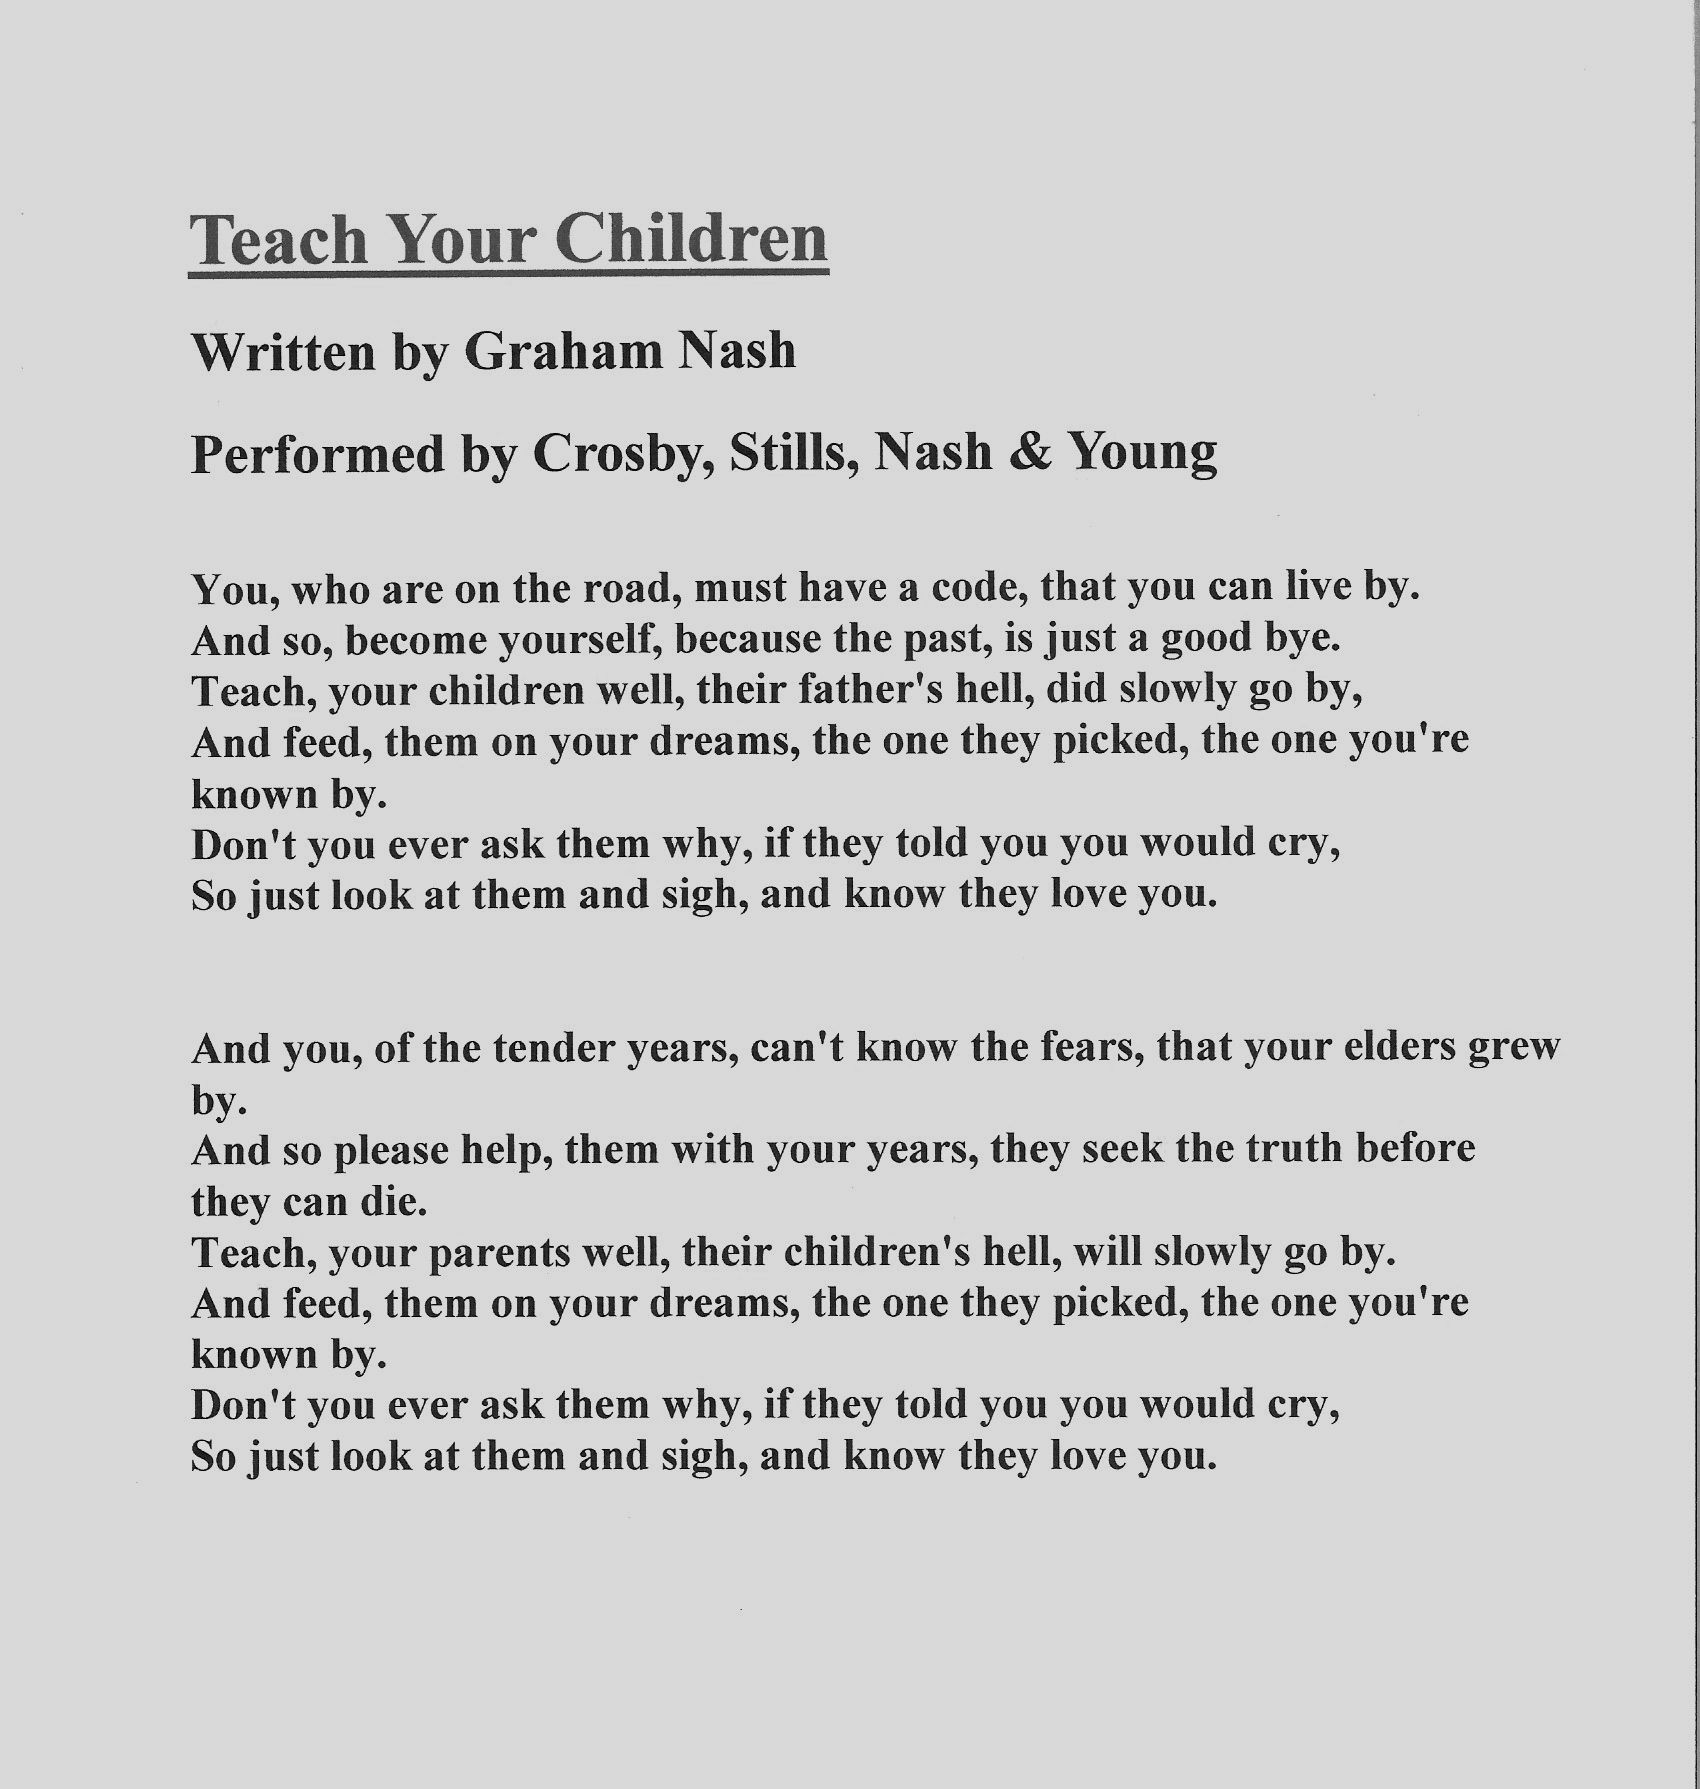 lyrics quotteach your childrenquot written by graham nash and